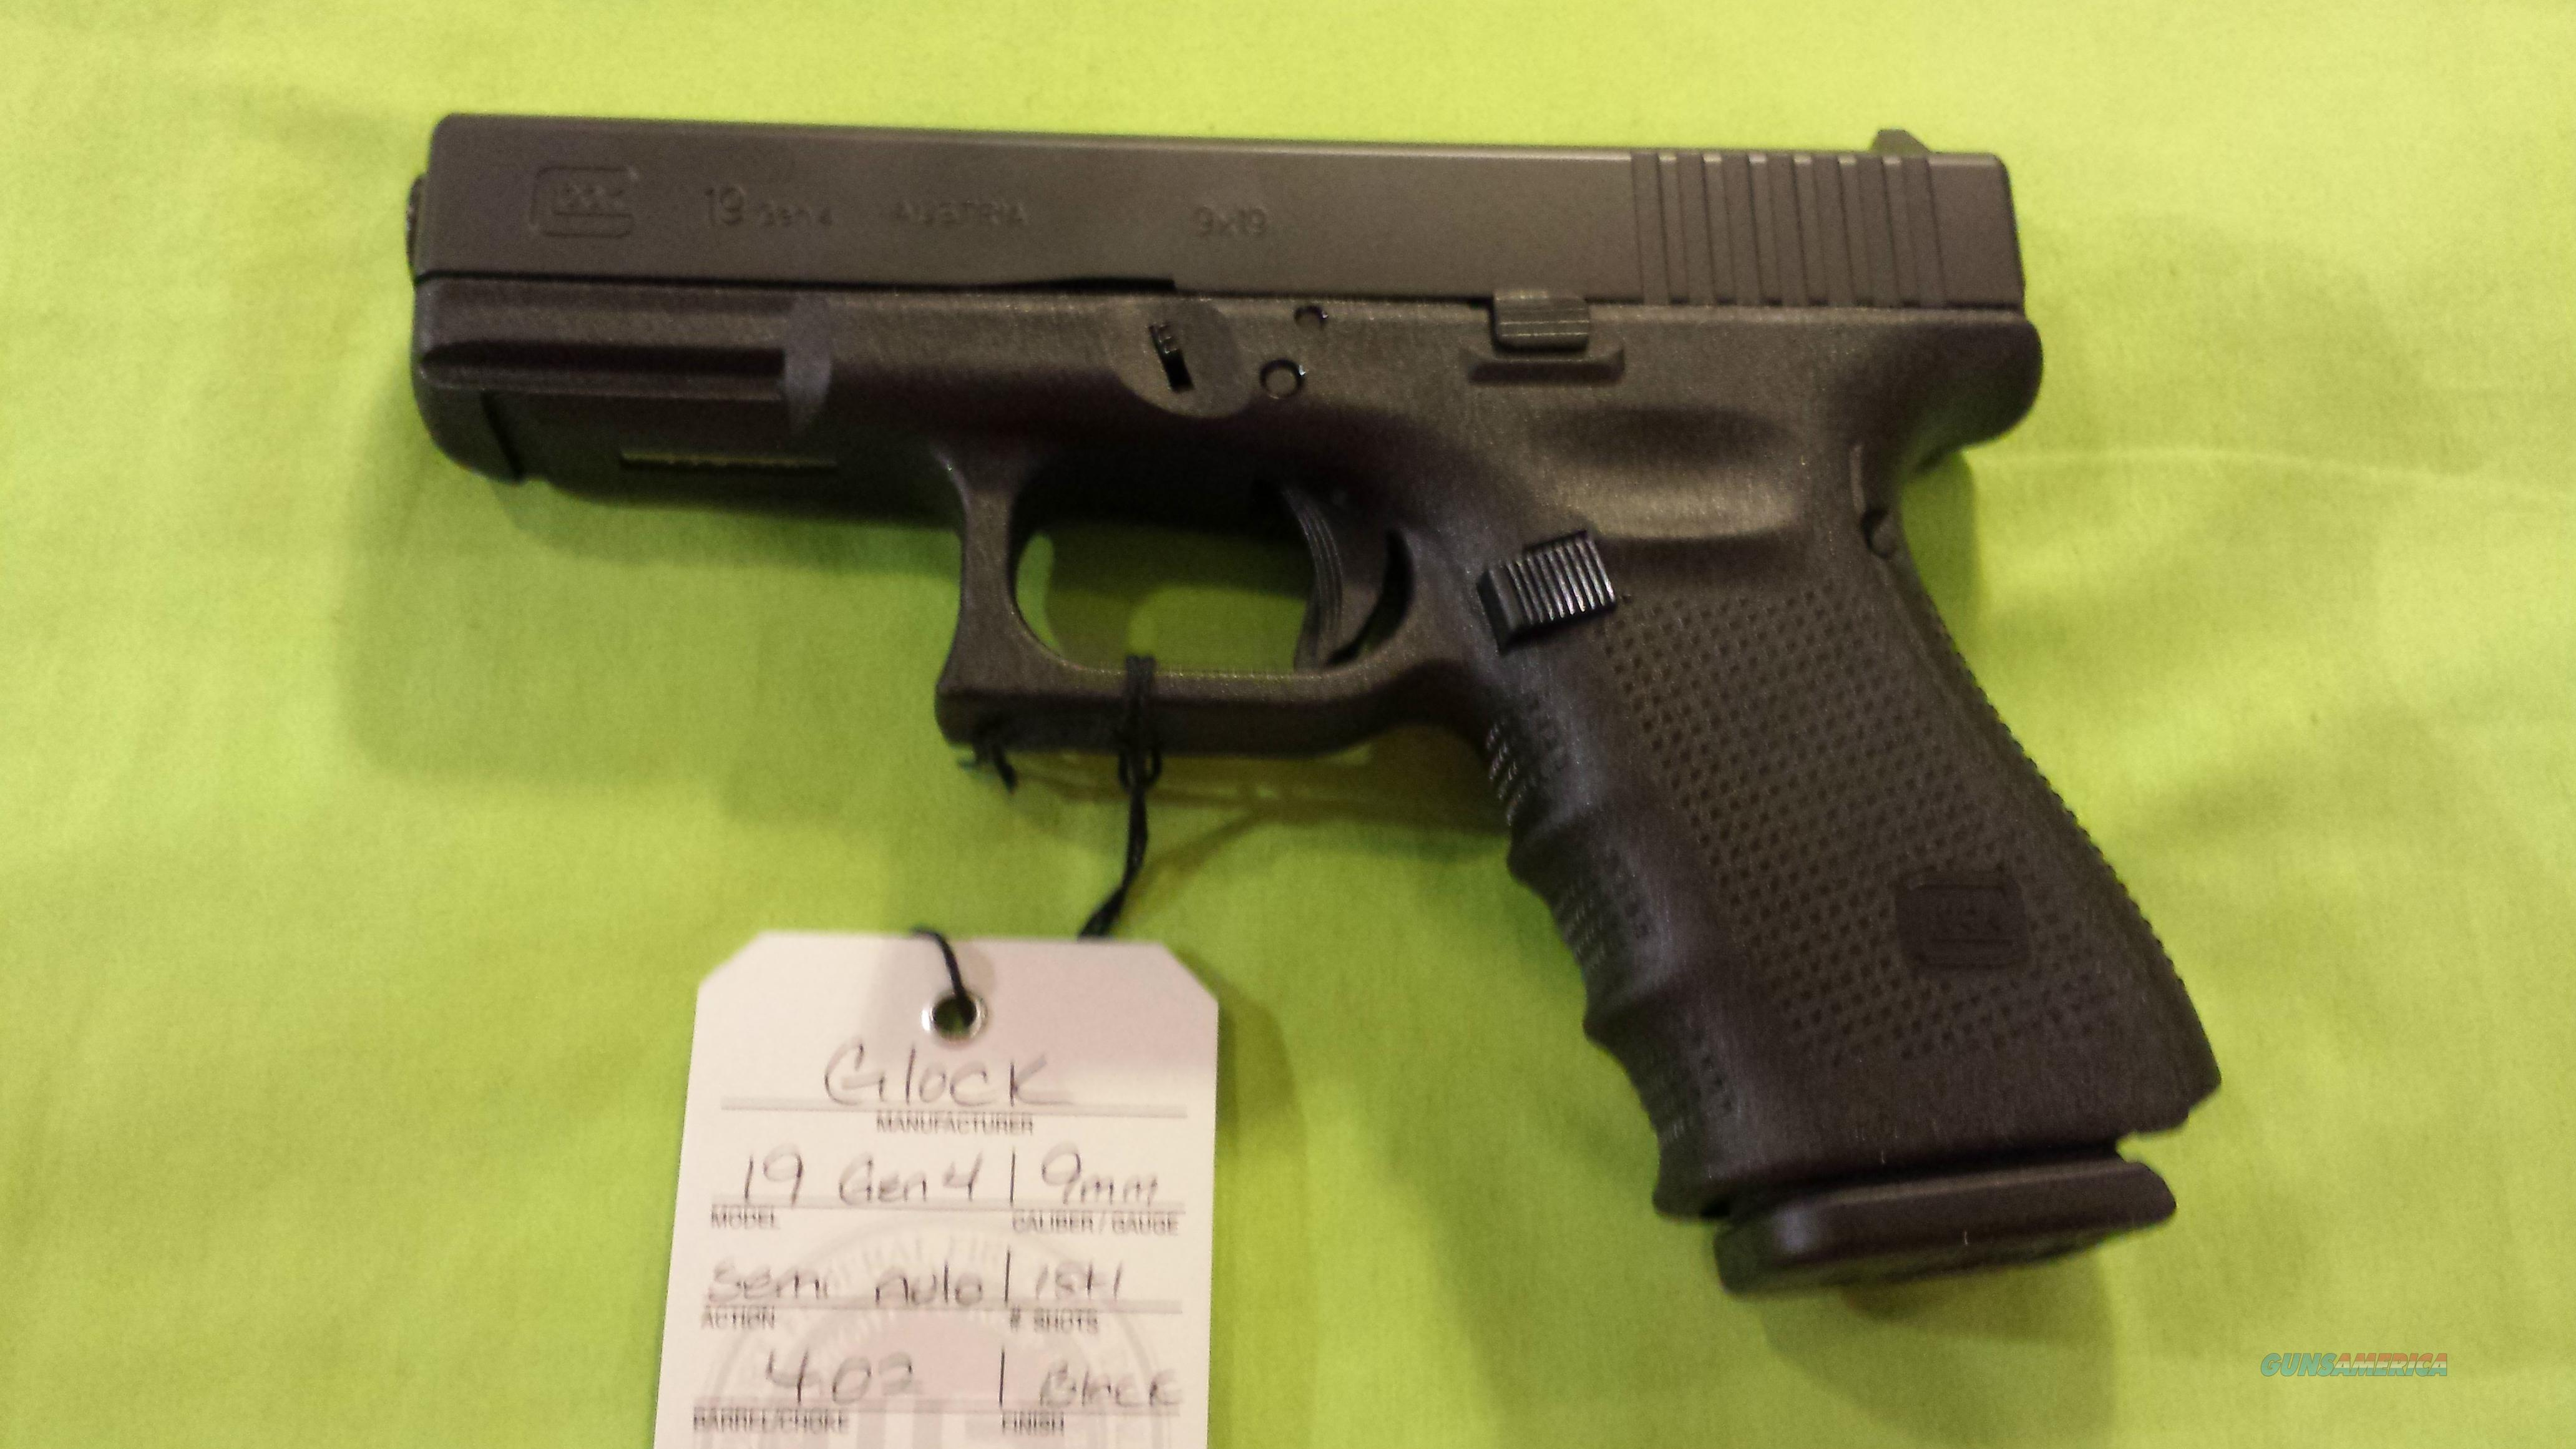 GLOCK 19 GEN 4 9MM 9 MM 15RD 3 MAGS BACKSTRAPS BLACK NIGHT SIGHTS  Guns > Pistols > Glock Pistols > 19